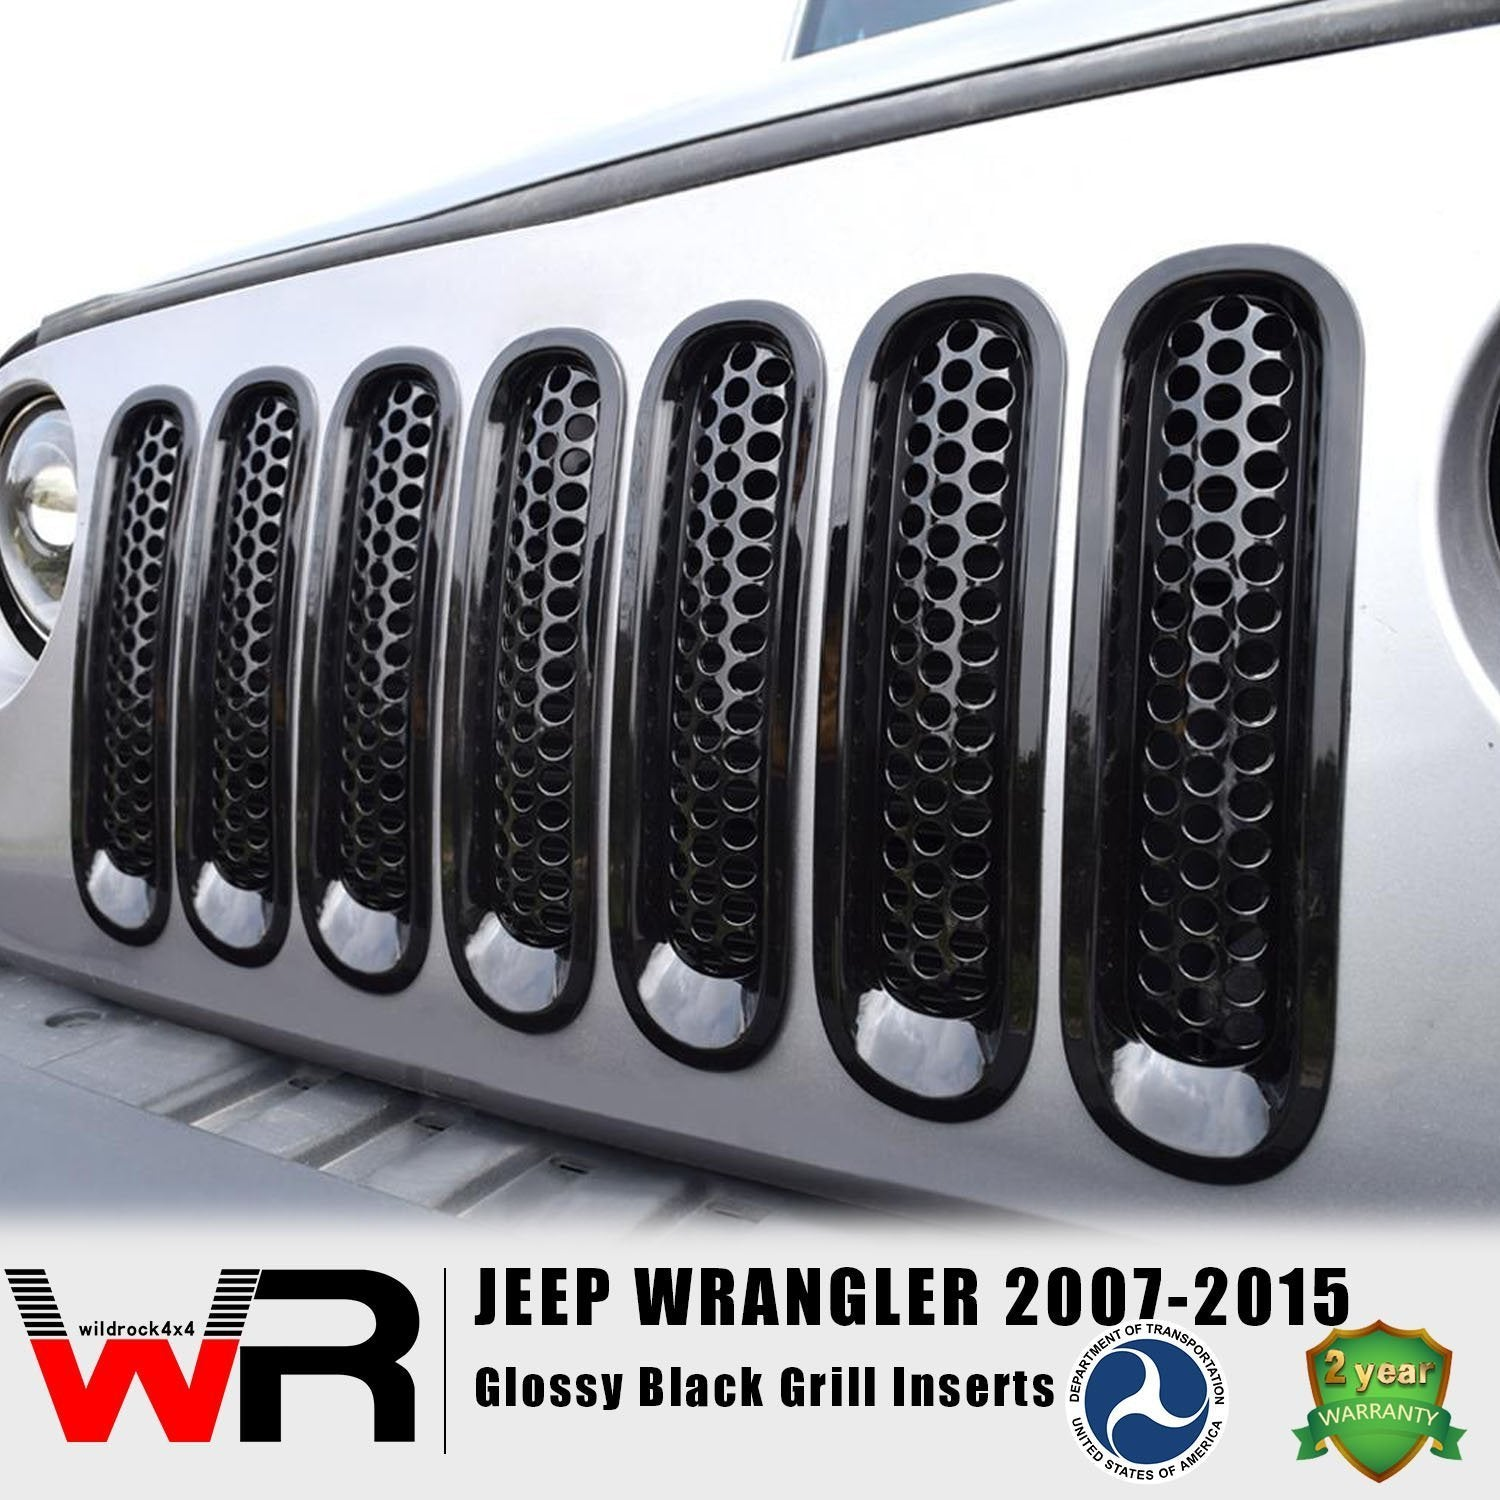 Glossy Black Grill Inserts for Jeep Wrangler JK 07-15-7PCS